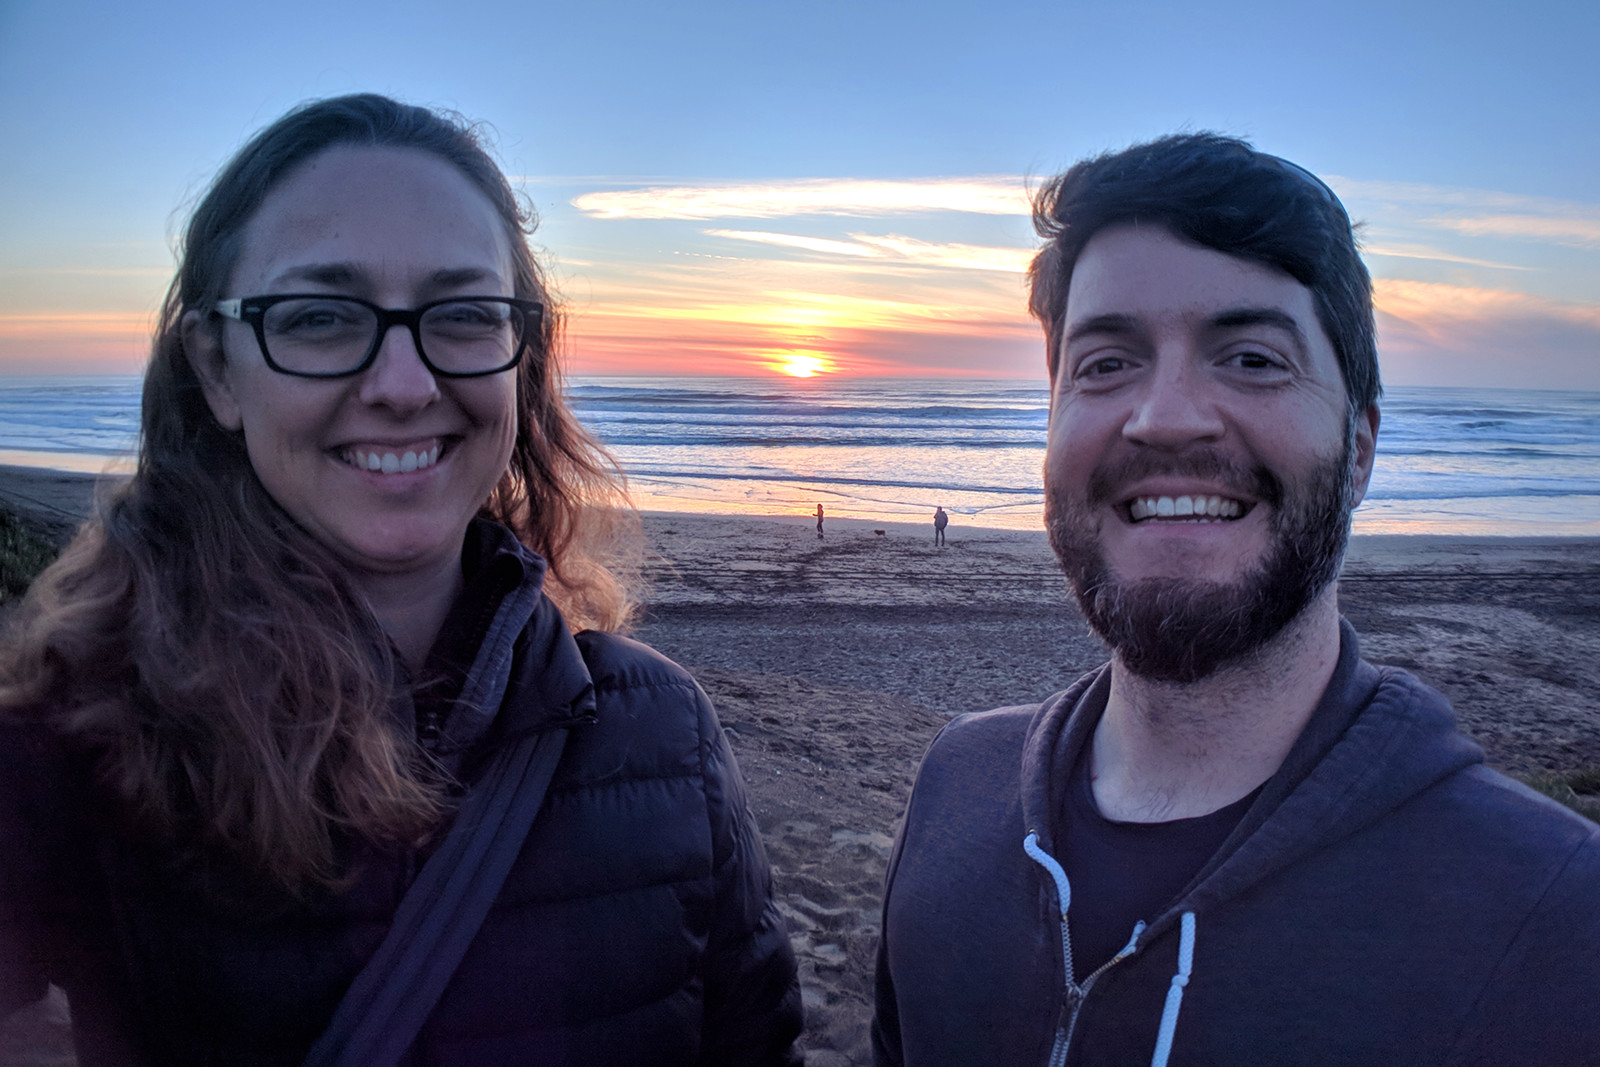 Stephanie and Justin on Ocean Beach in San Francisco, CA at sunset on January 31, 2019